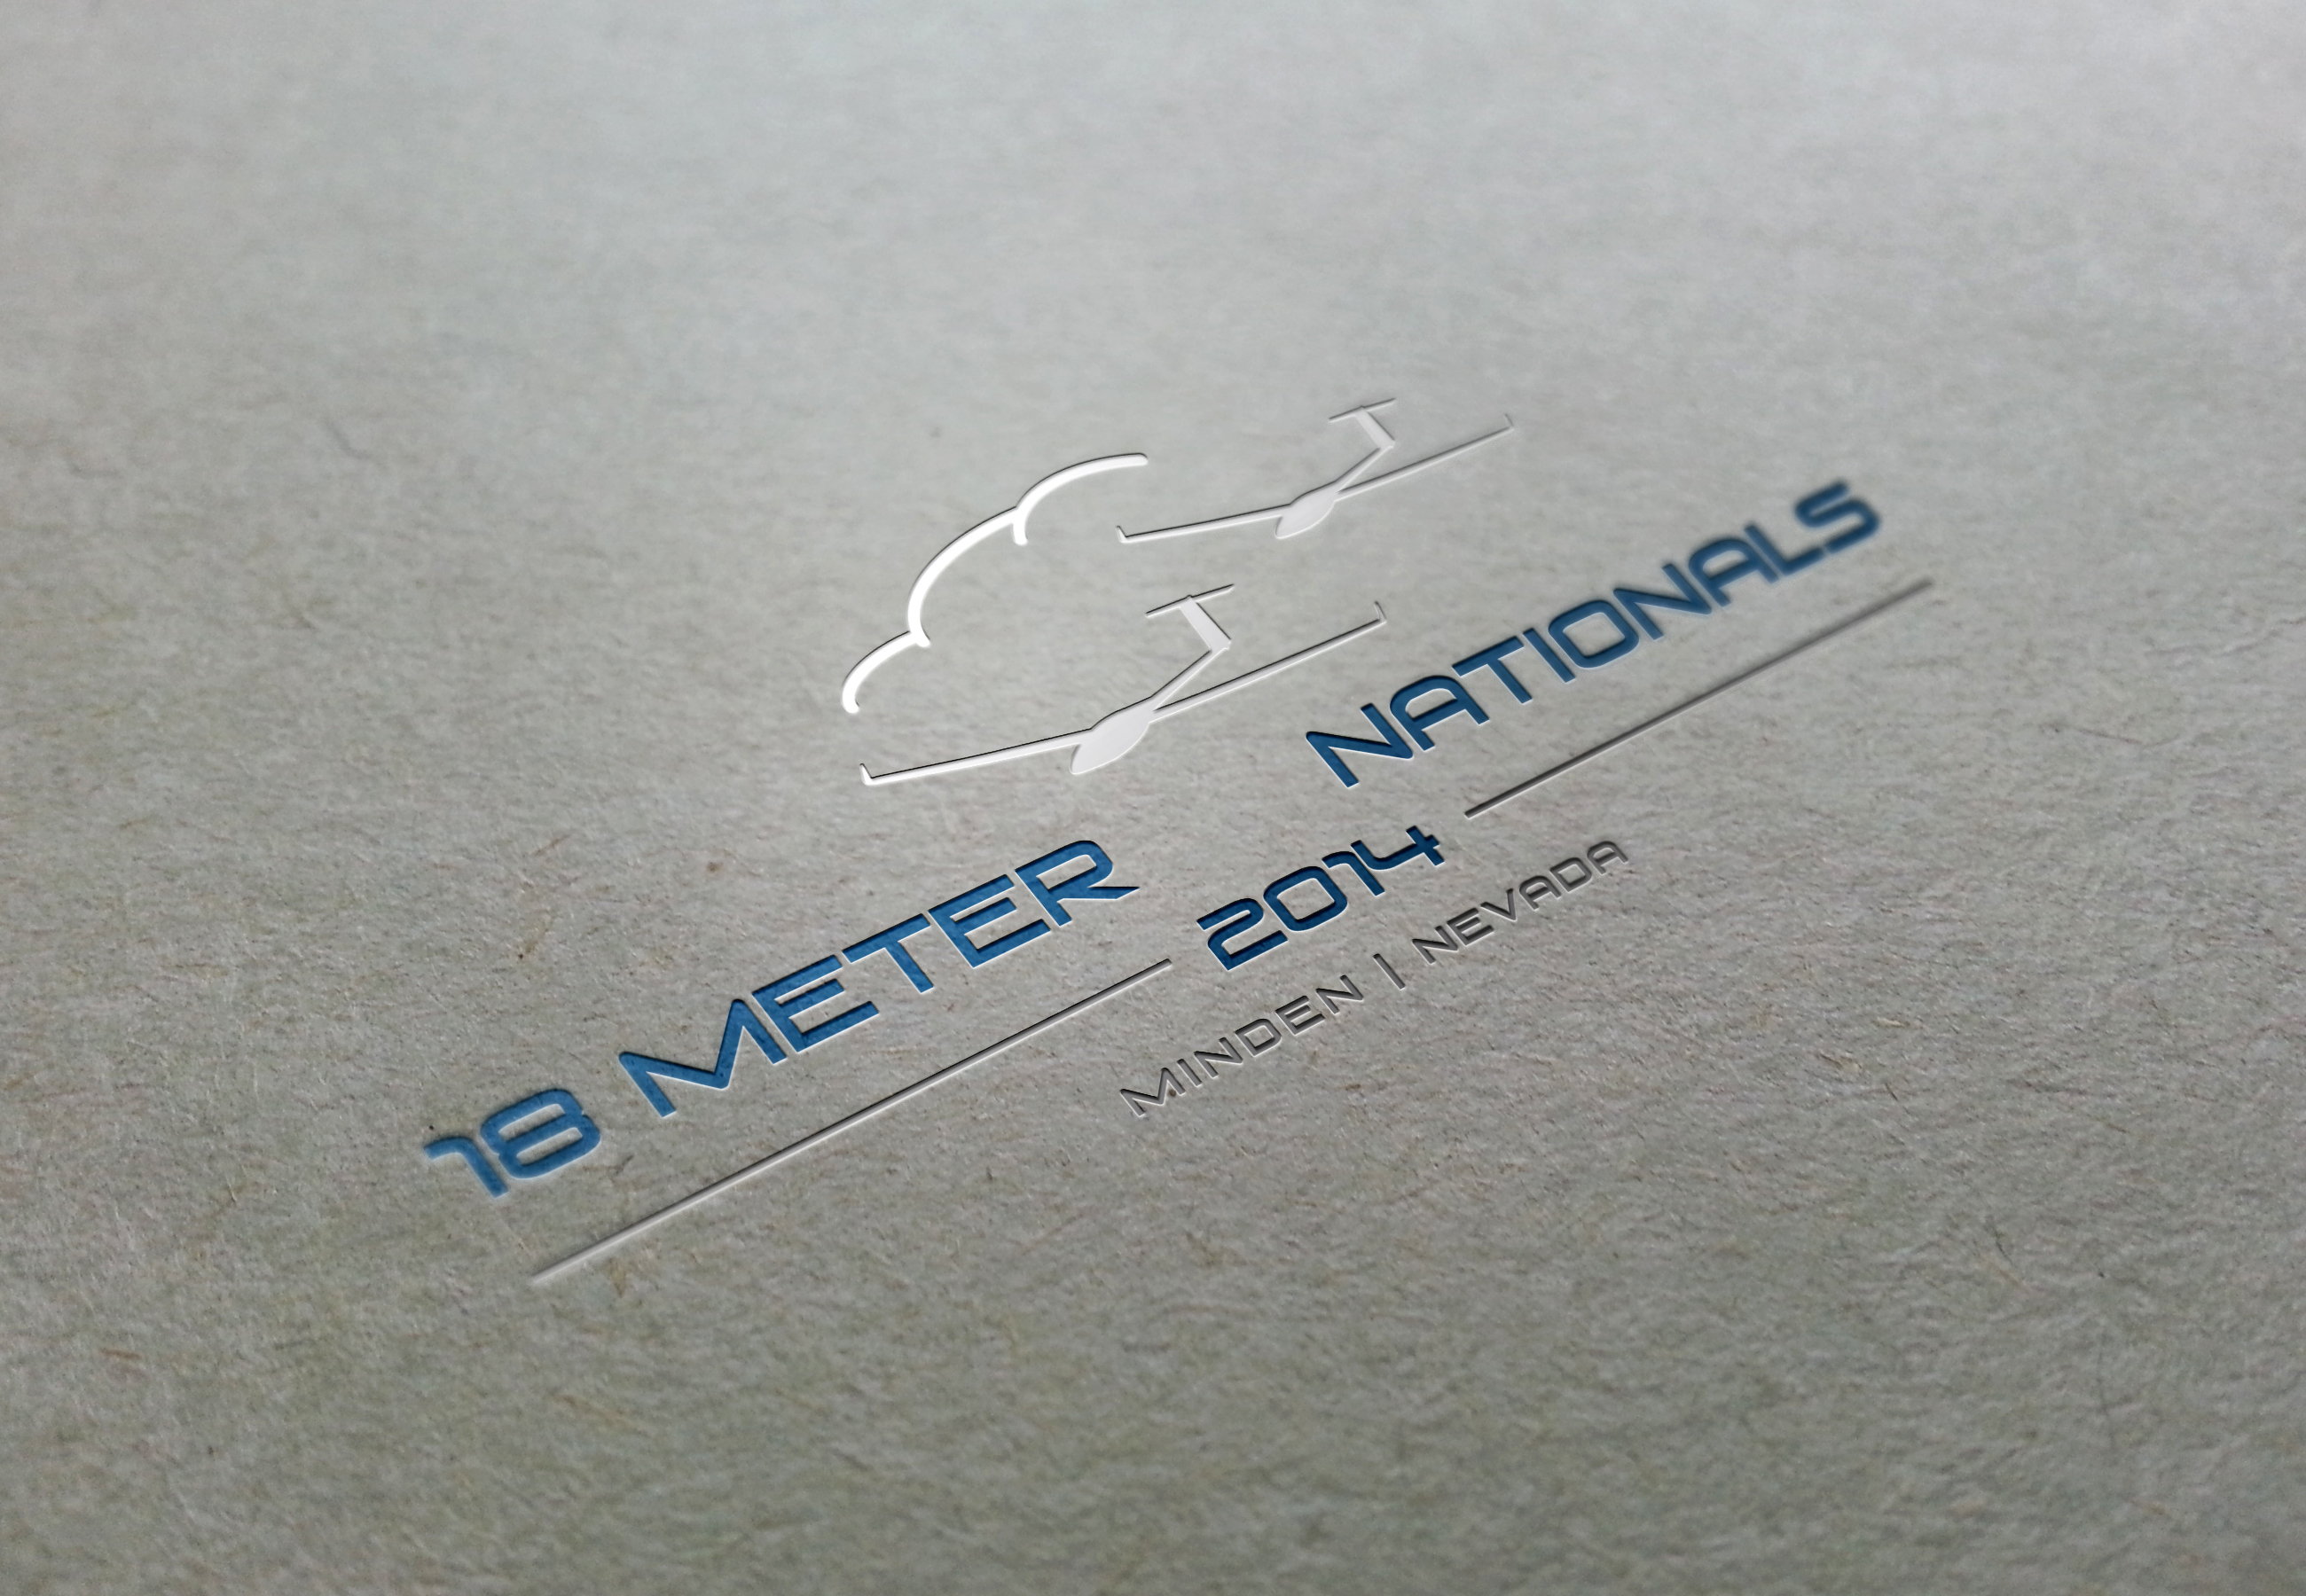 18-meter Nationals logo